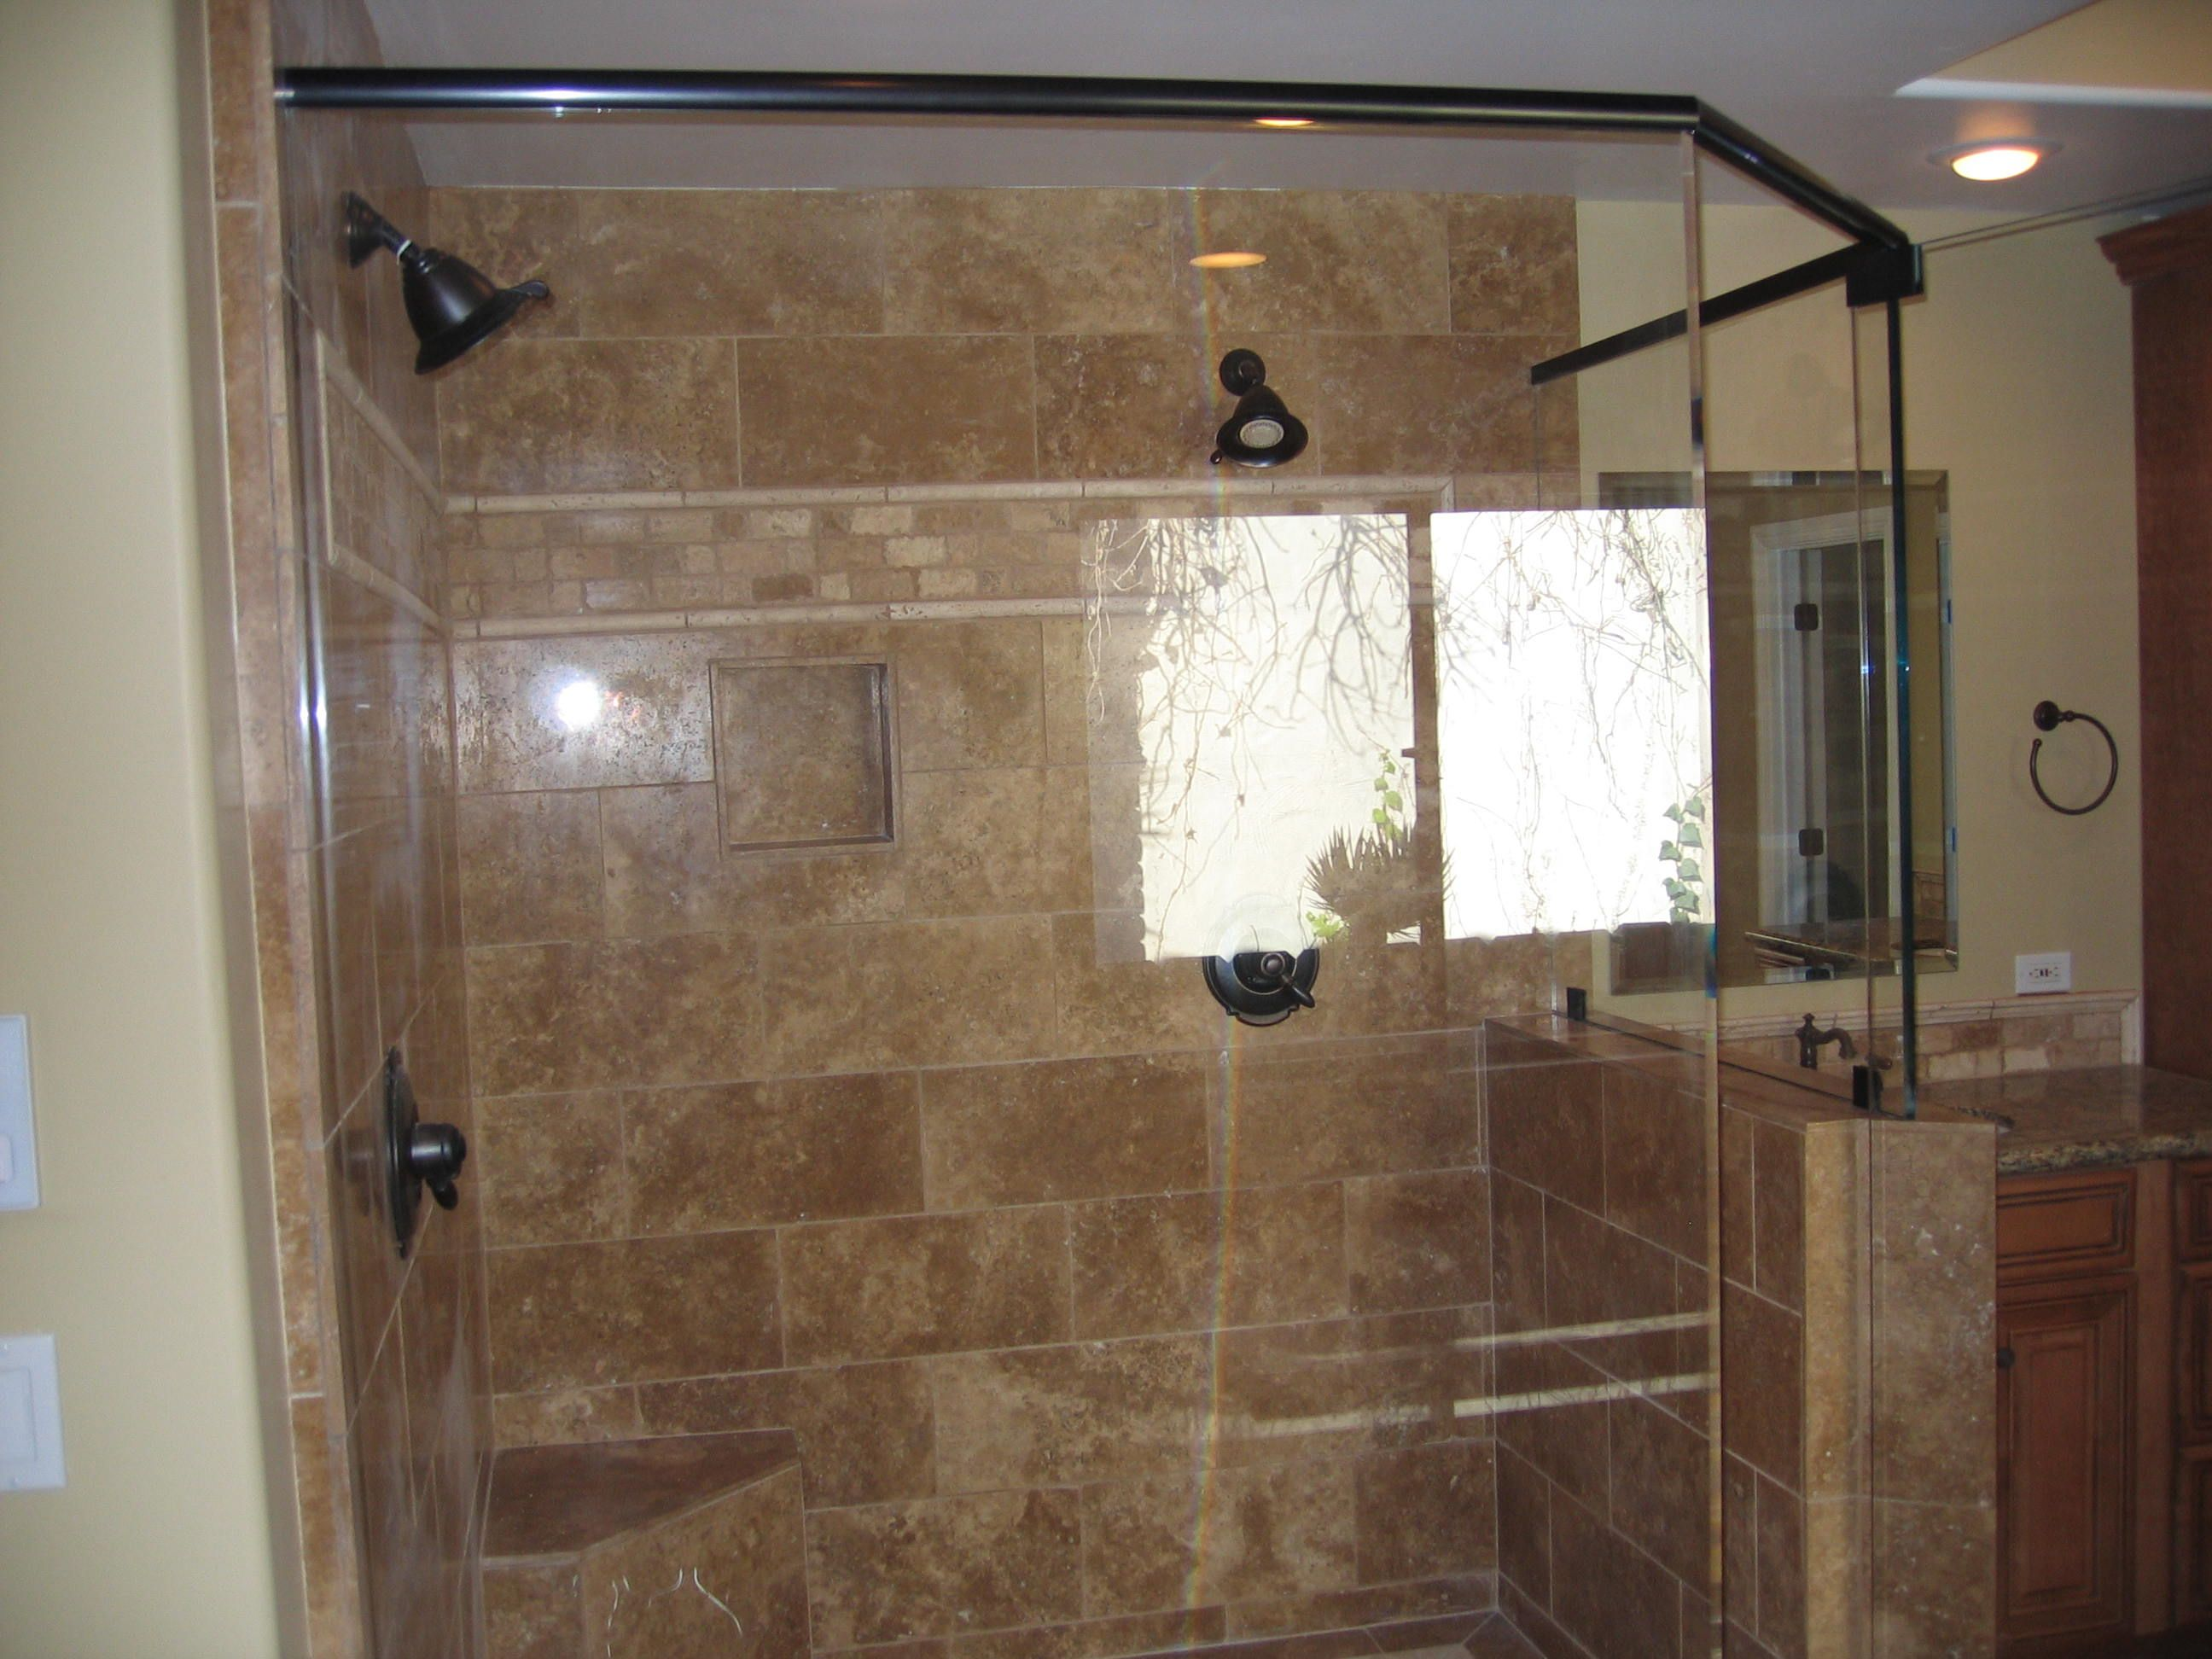 Large Seamless Glass Shower Doors With Vanity On The Right Side